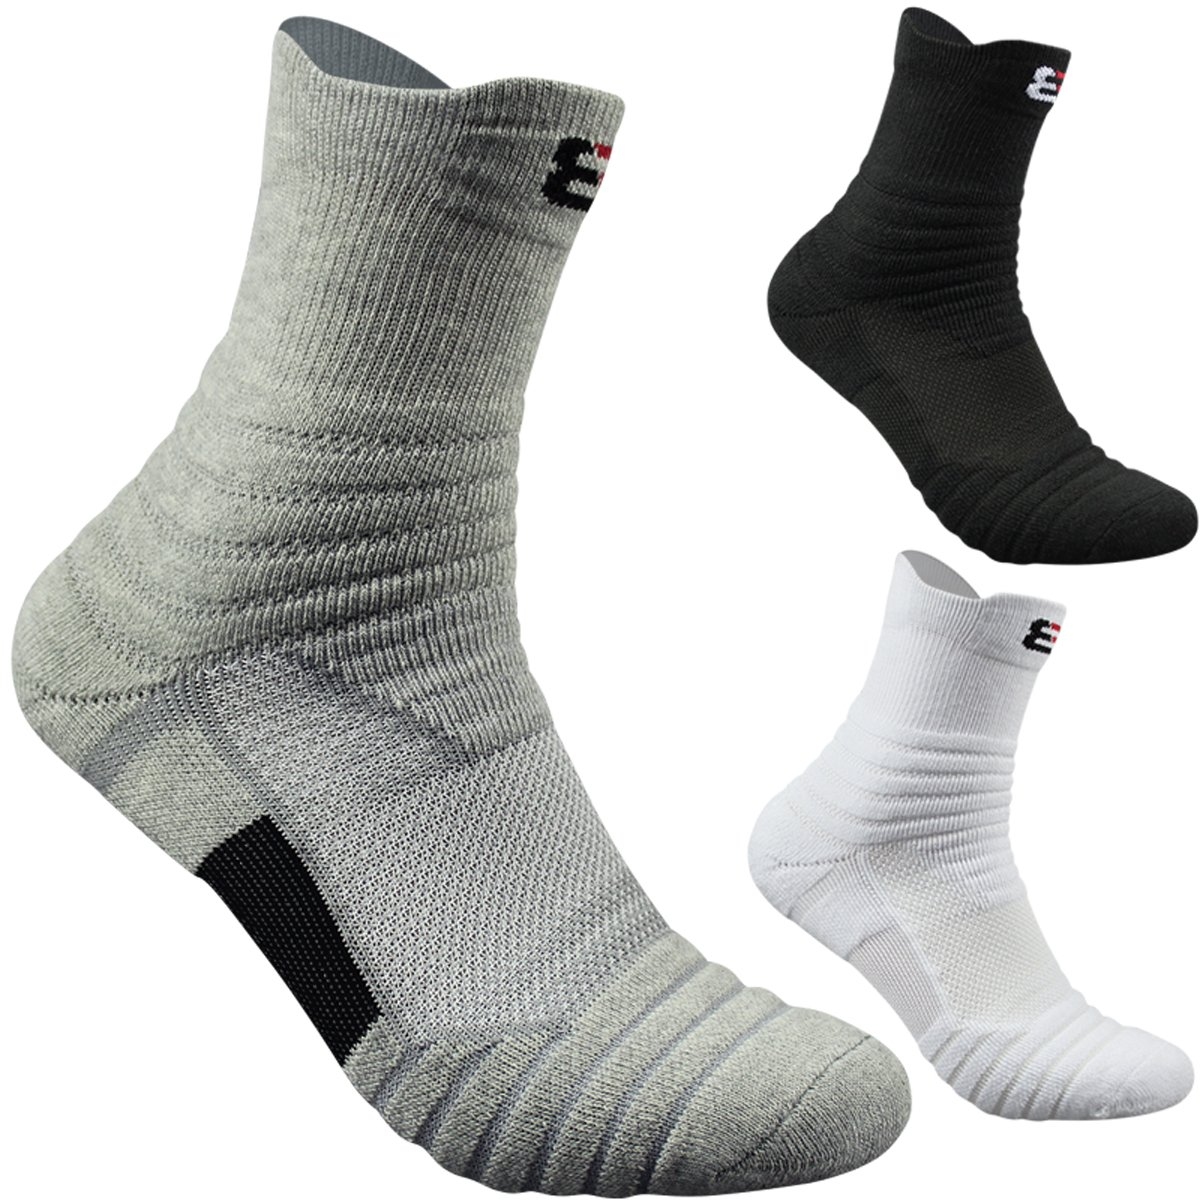 3-Pack Men's Athletic Cushion Quarter Ankle Sock Performance Cotton Compression Sport Basketball Arch Support Socks,Size 6-12 (Mulitcolor A)